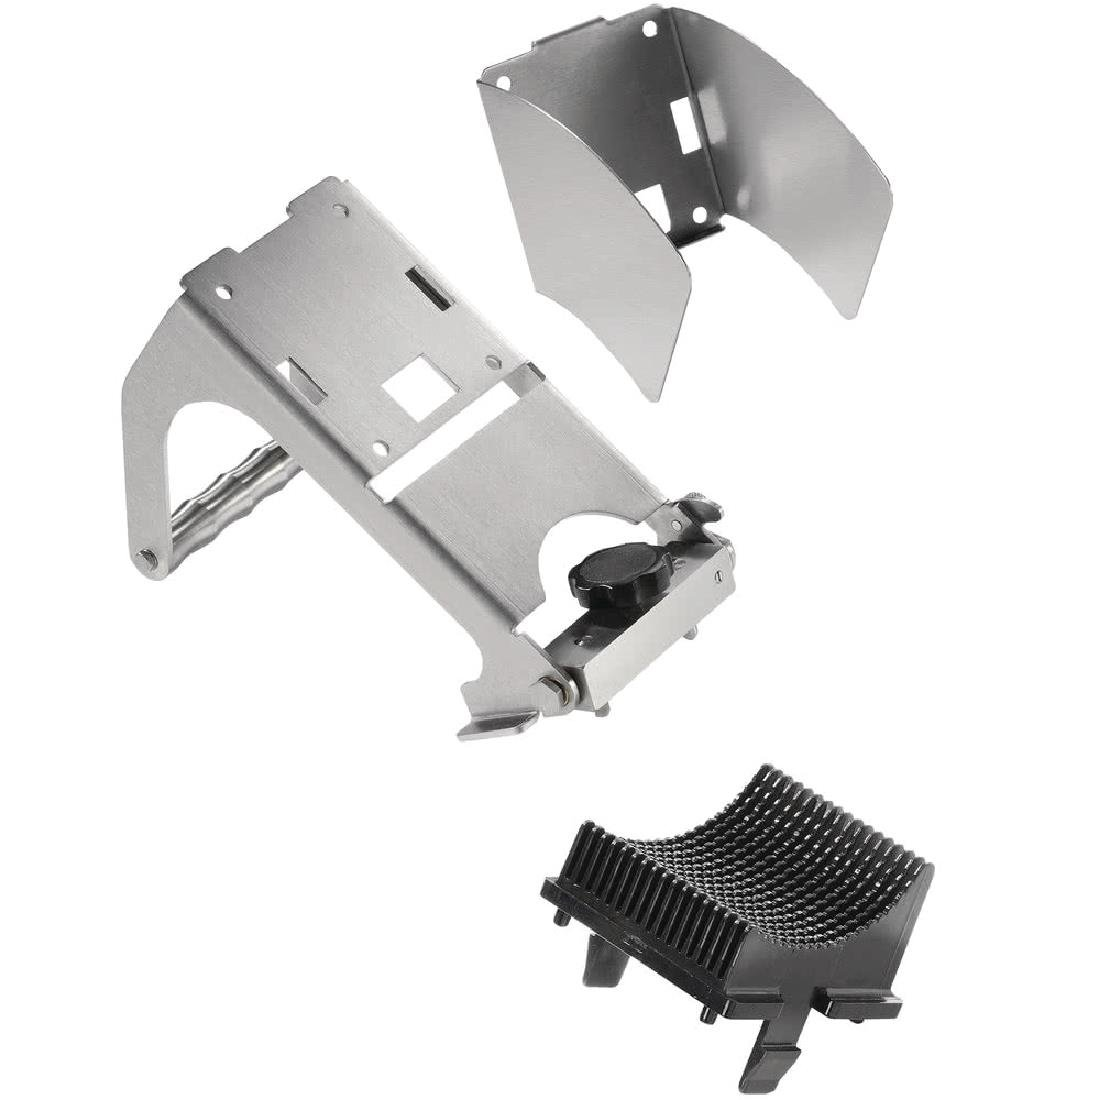 Image of Edlund 350 Series Electric Slicer Blade and Pusher Kit 3/16 K35101